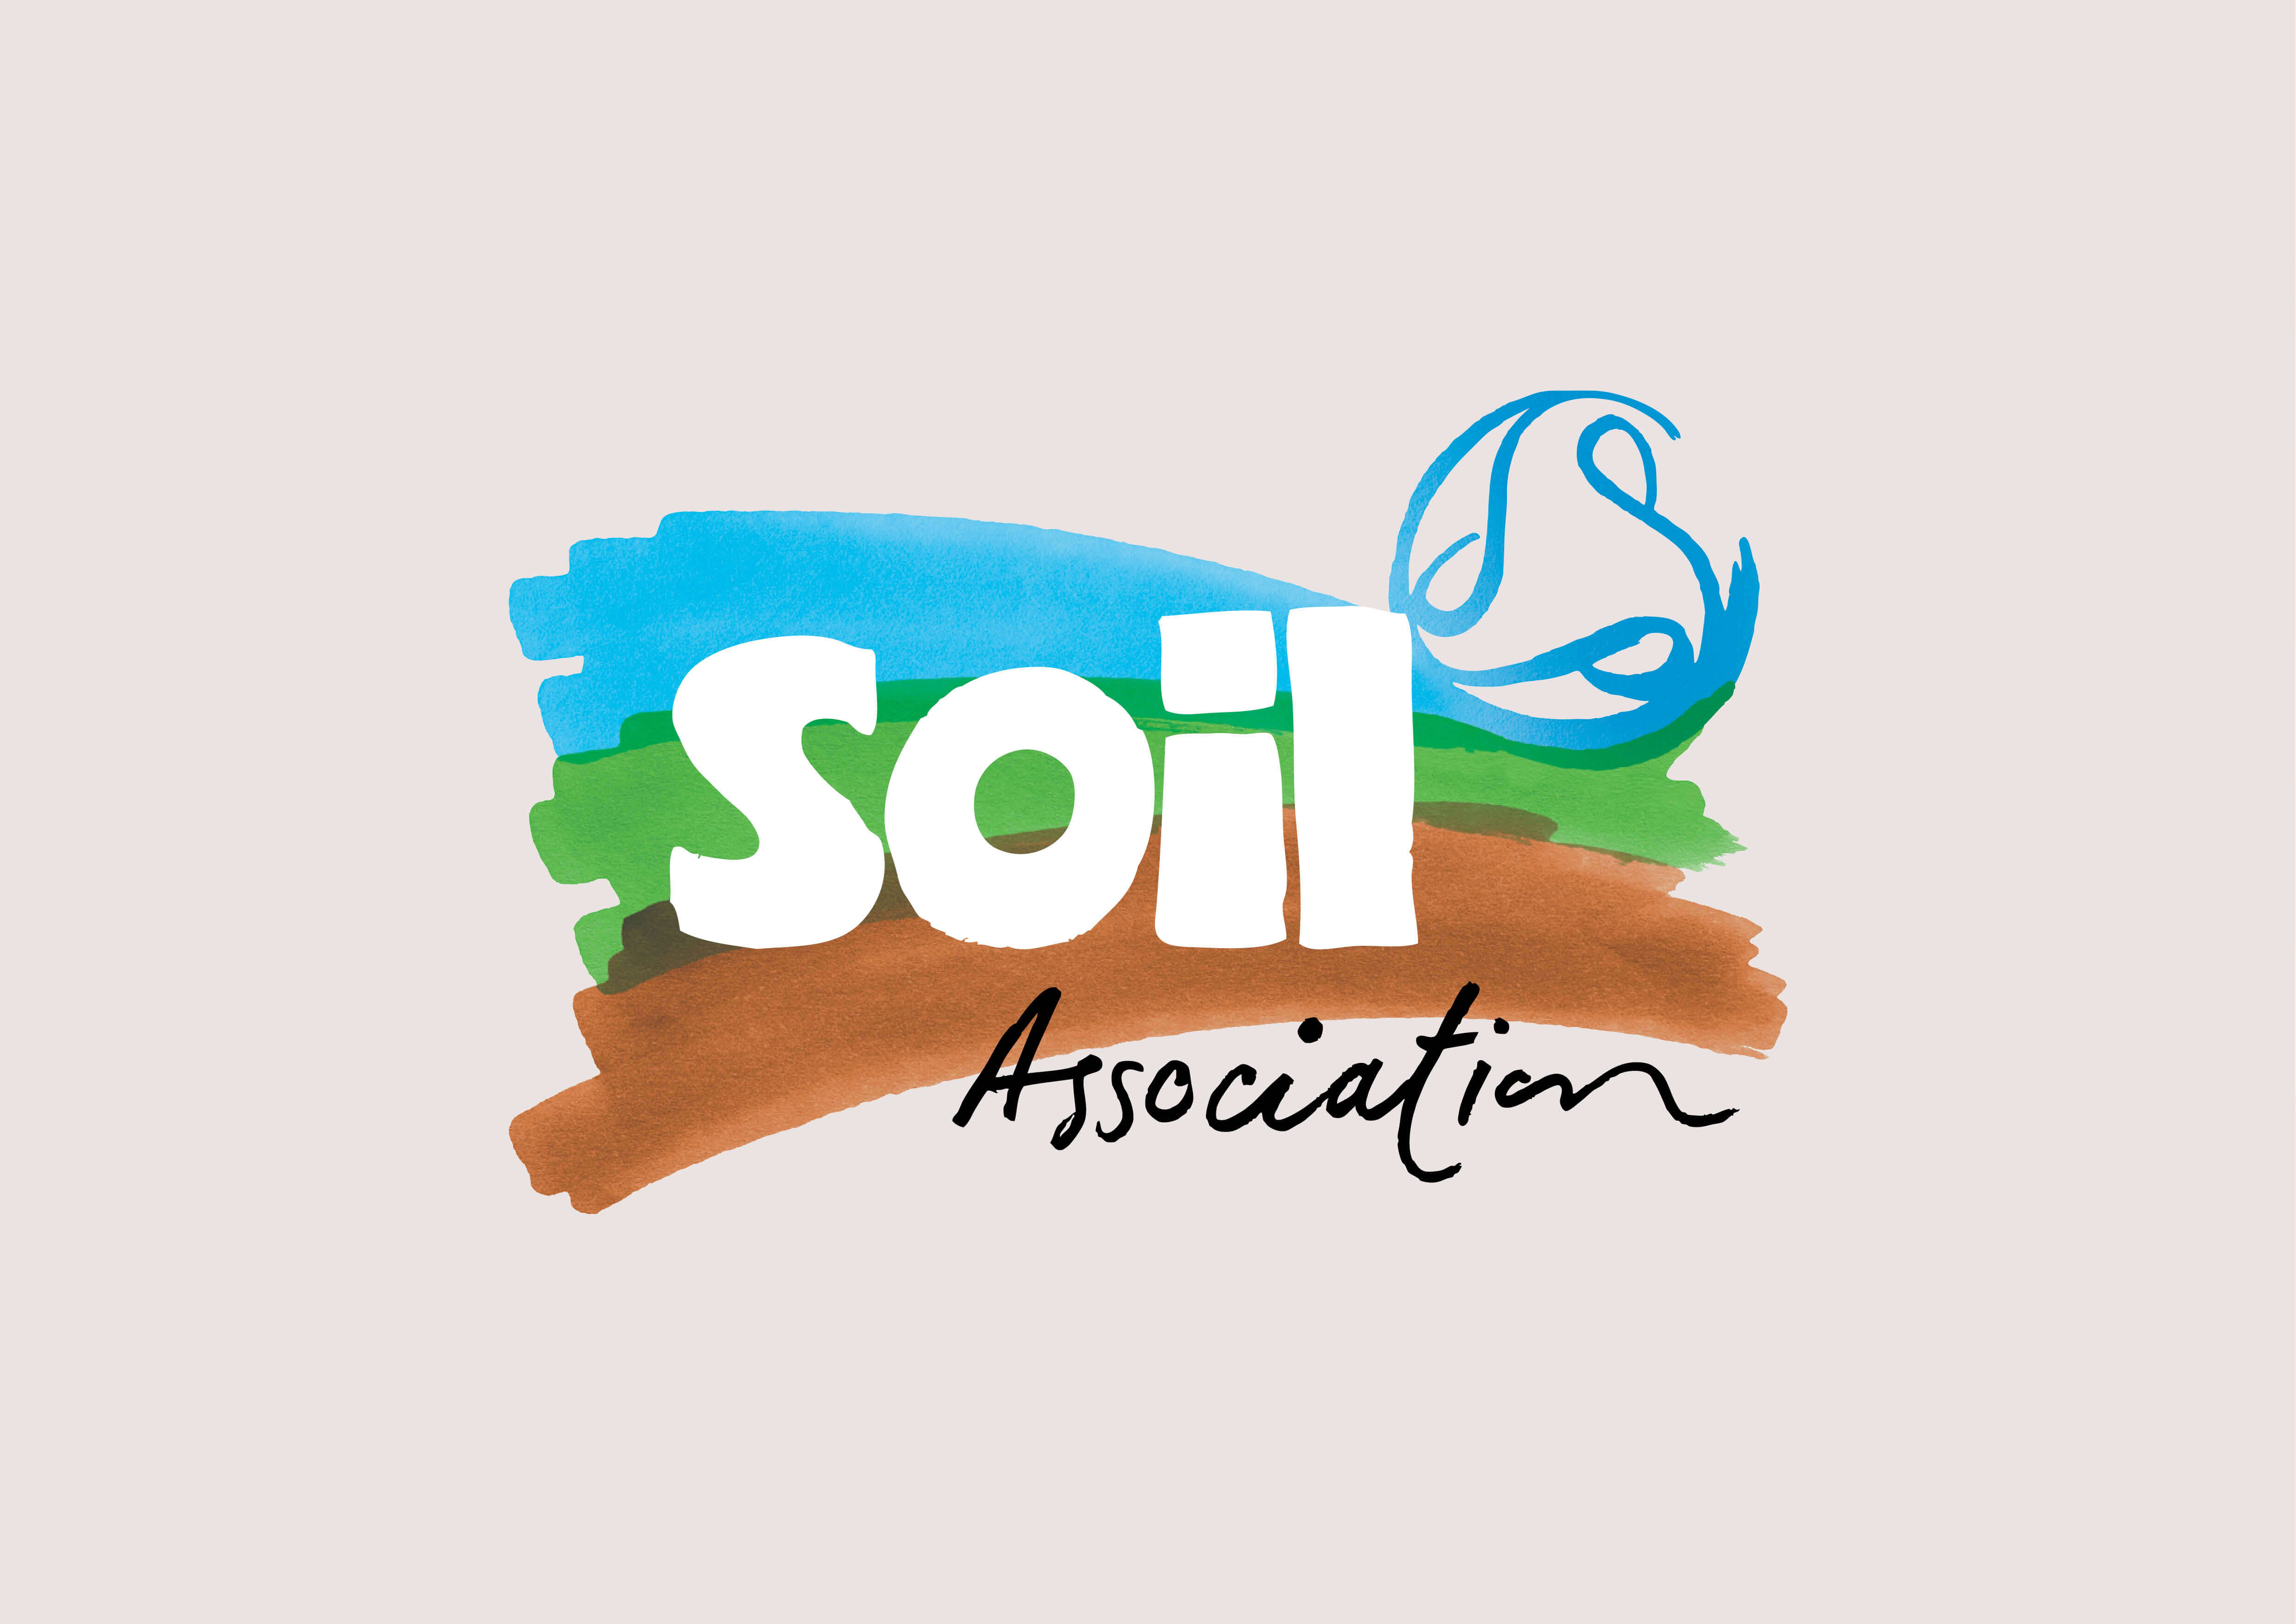 I'm proud to have worked with the Soil Association on a range of projects including campaign identities, printed reports and video. Based in bristol, the Soil Association is a charity based in the United Kingdom. Founded in 1946, its activities include campaign work on issues including opposition to intensive farming, support for local purchasing and public education on nutrition; as well the certification of organic food.